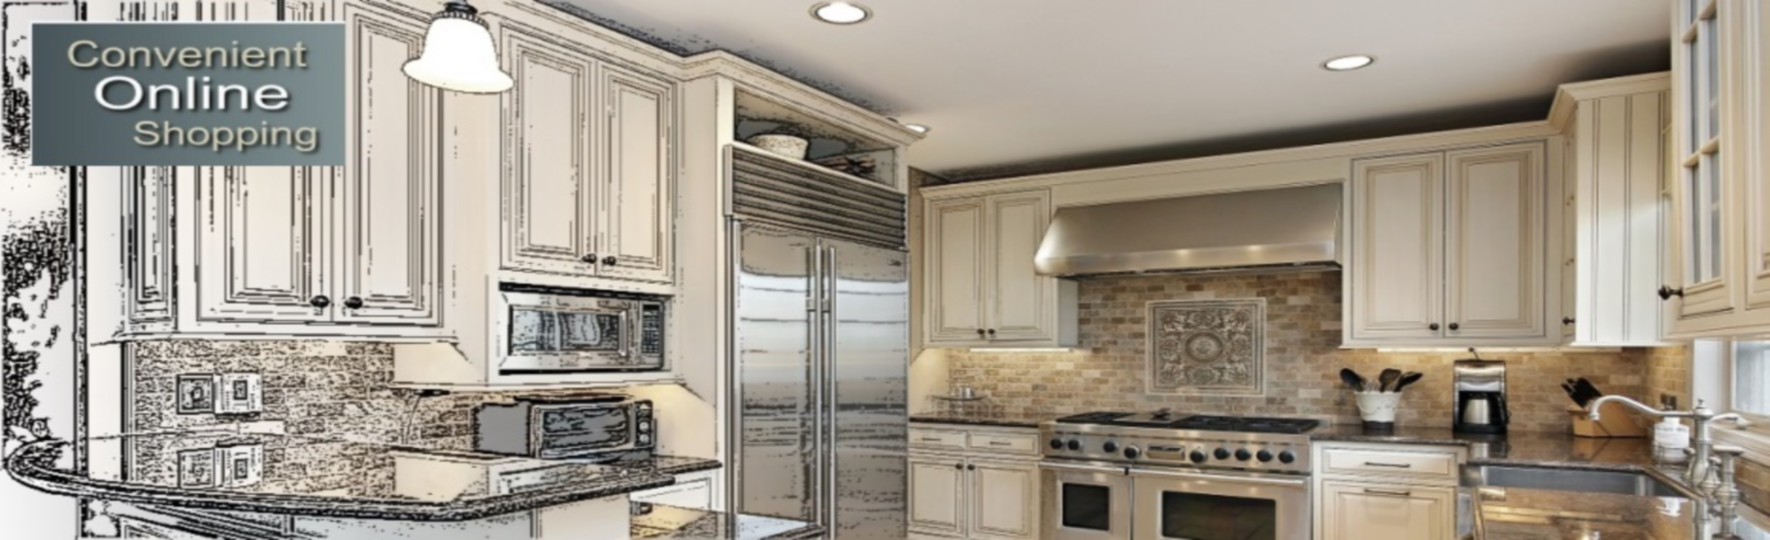 Discount Kitchen Cabinets Online Wholesale Kitchen Cabinet Hardware - Order kitchen cabinets online